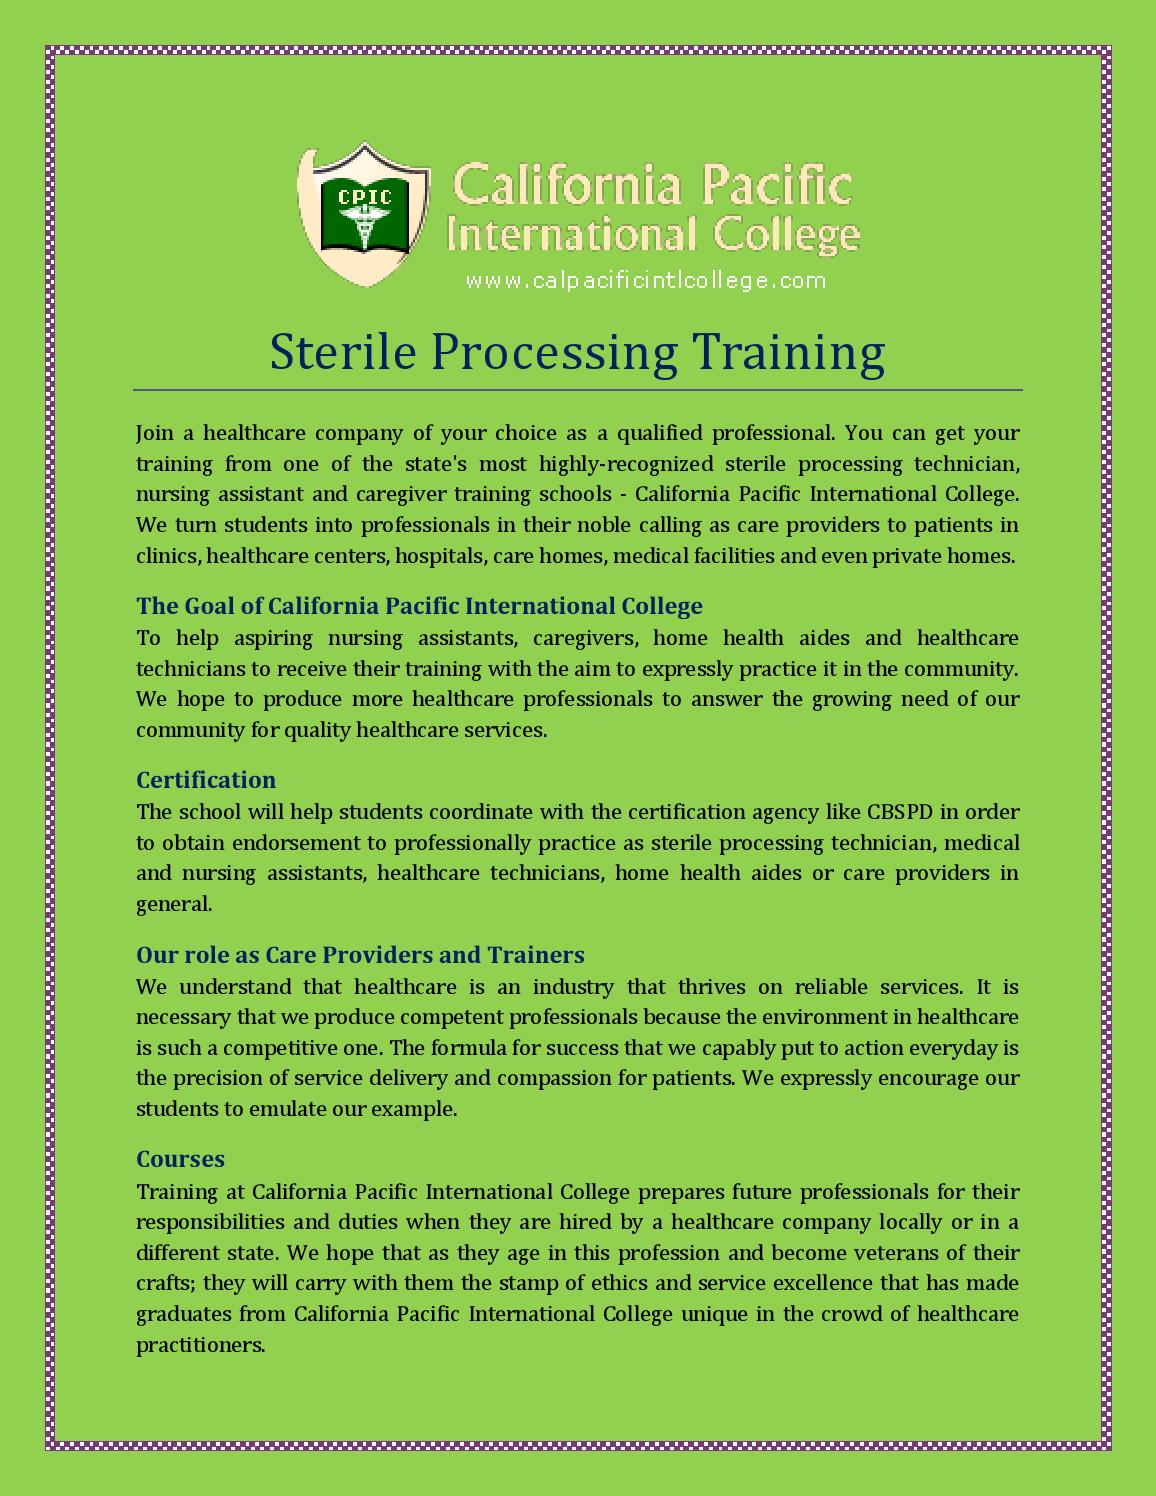 Sterile Processing Training By Calpacificintlcollege Issuu